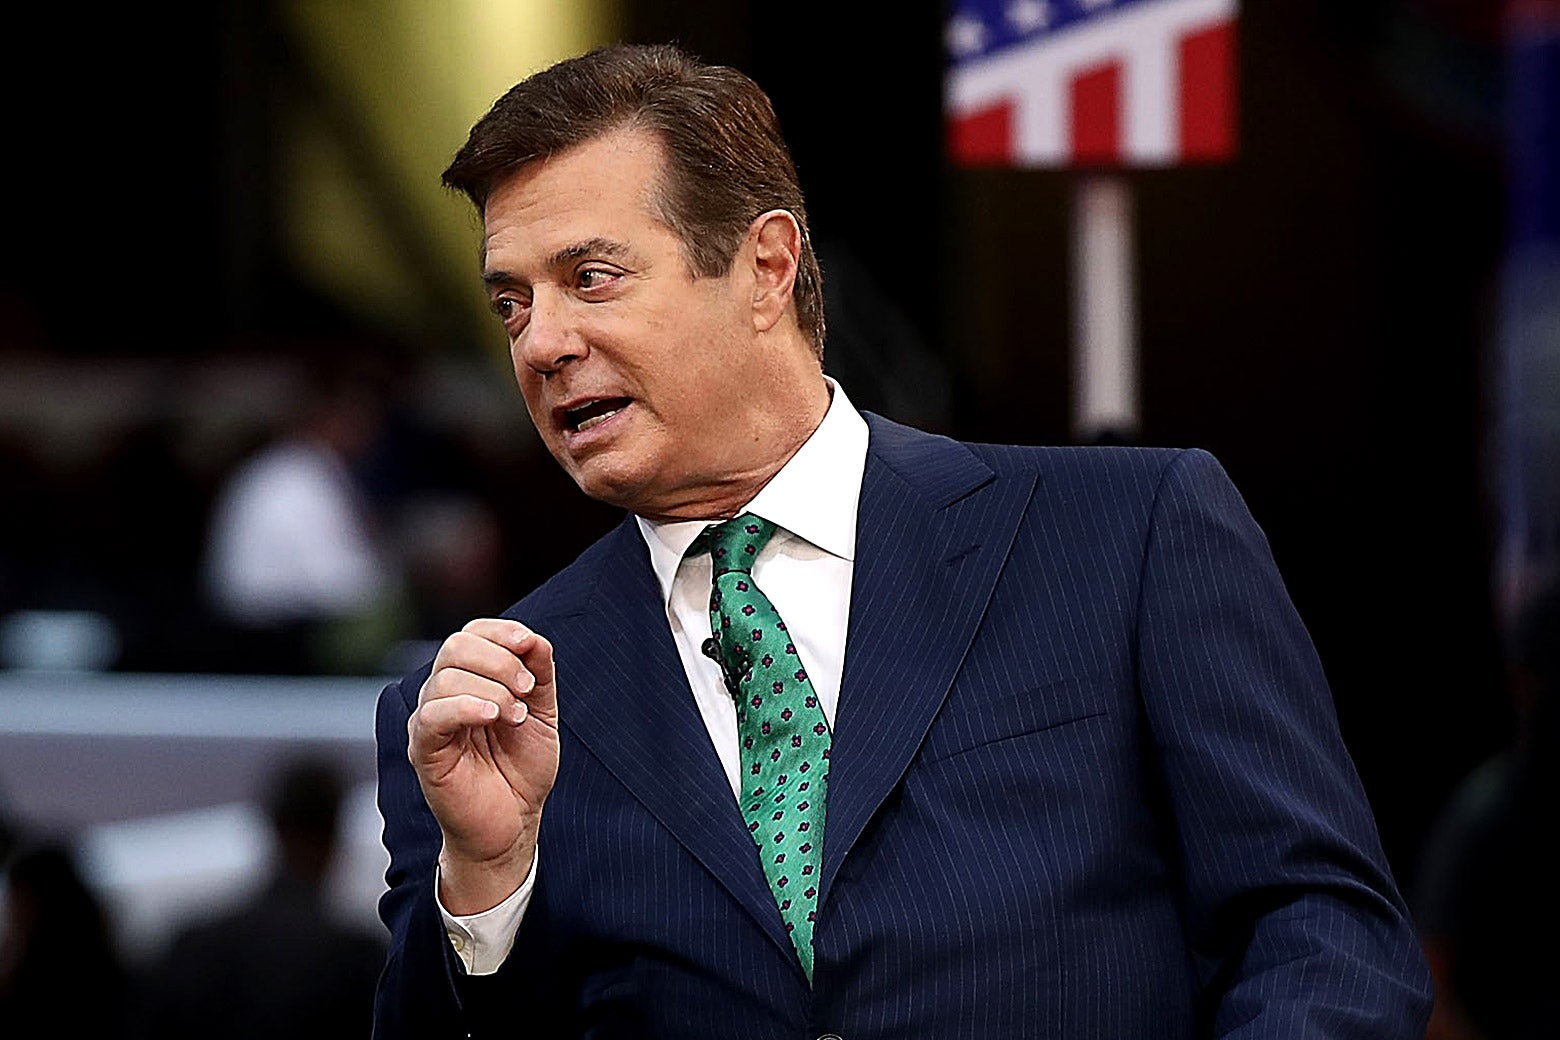 Paul Manafort leans over to talk to an interviewer.